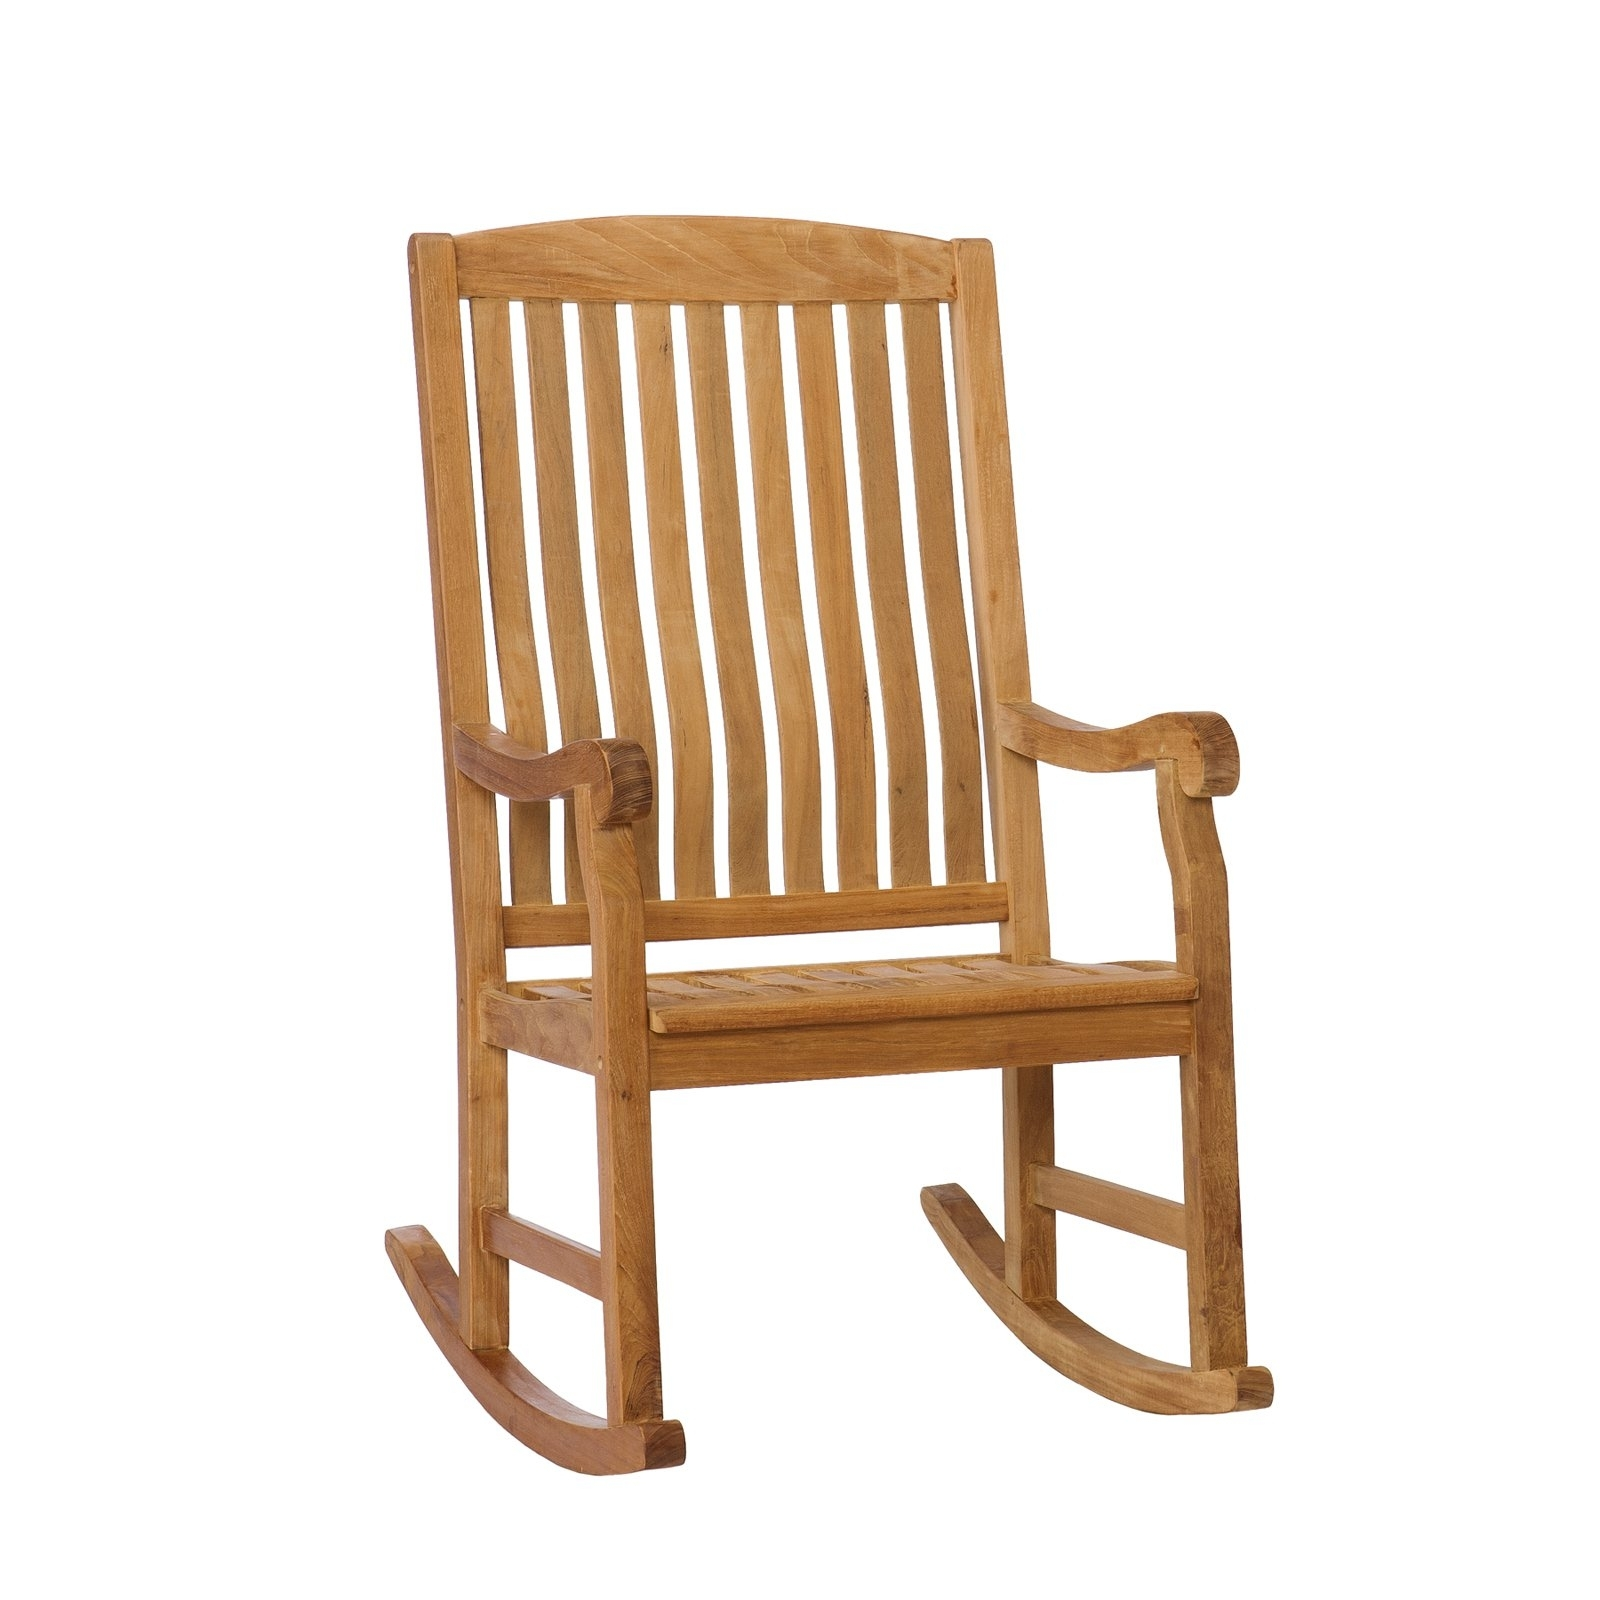 Folding Rocking Chairs Amazon Stunning Chair Images Ideas Best With Amazon Rocking Chairs (View 6 of 15)